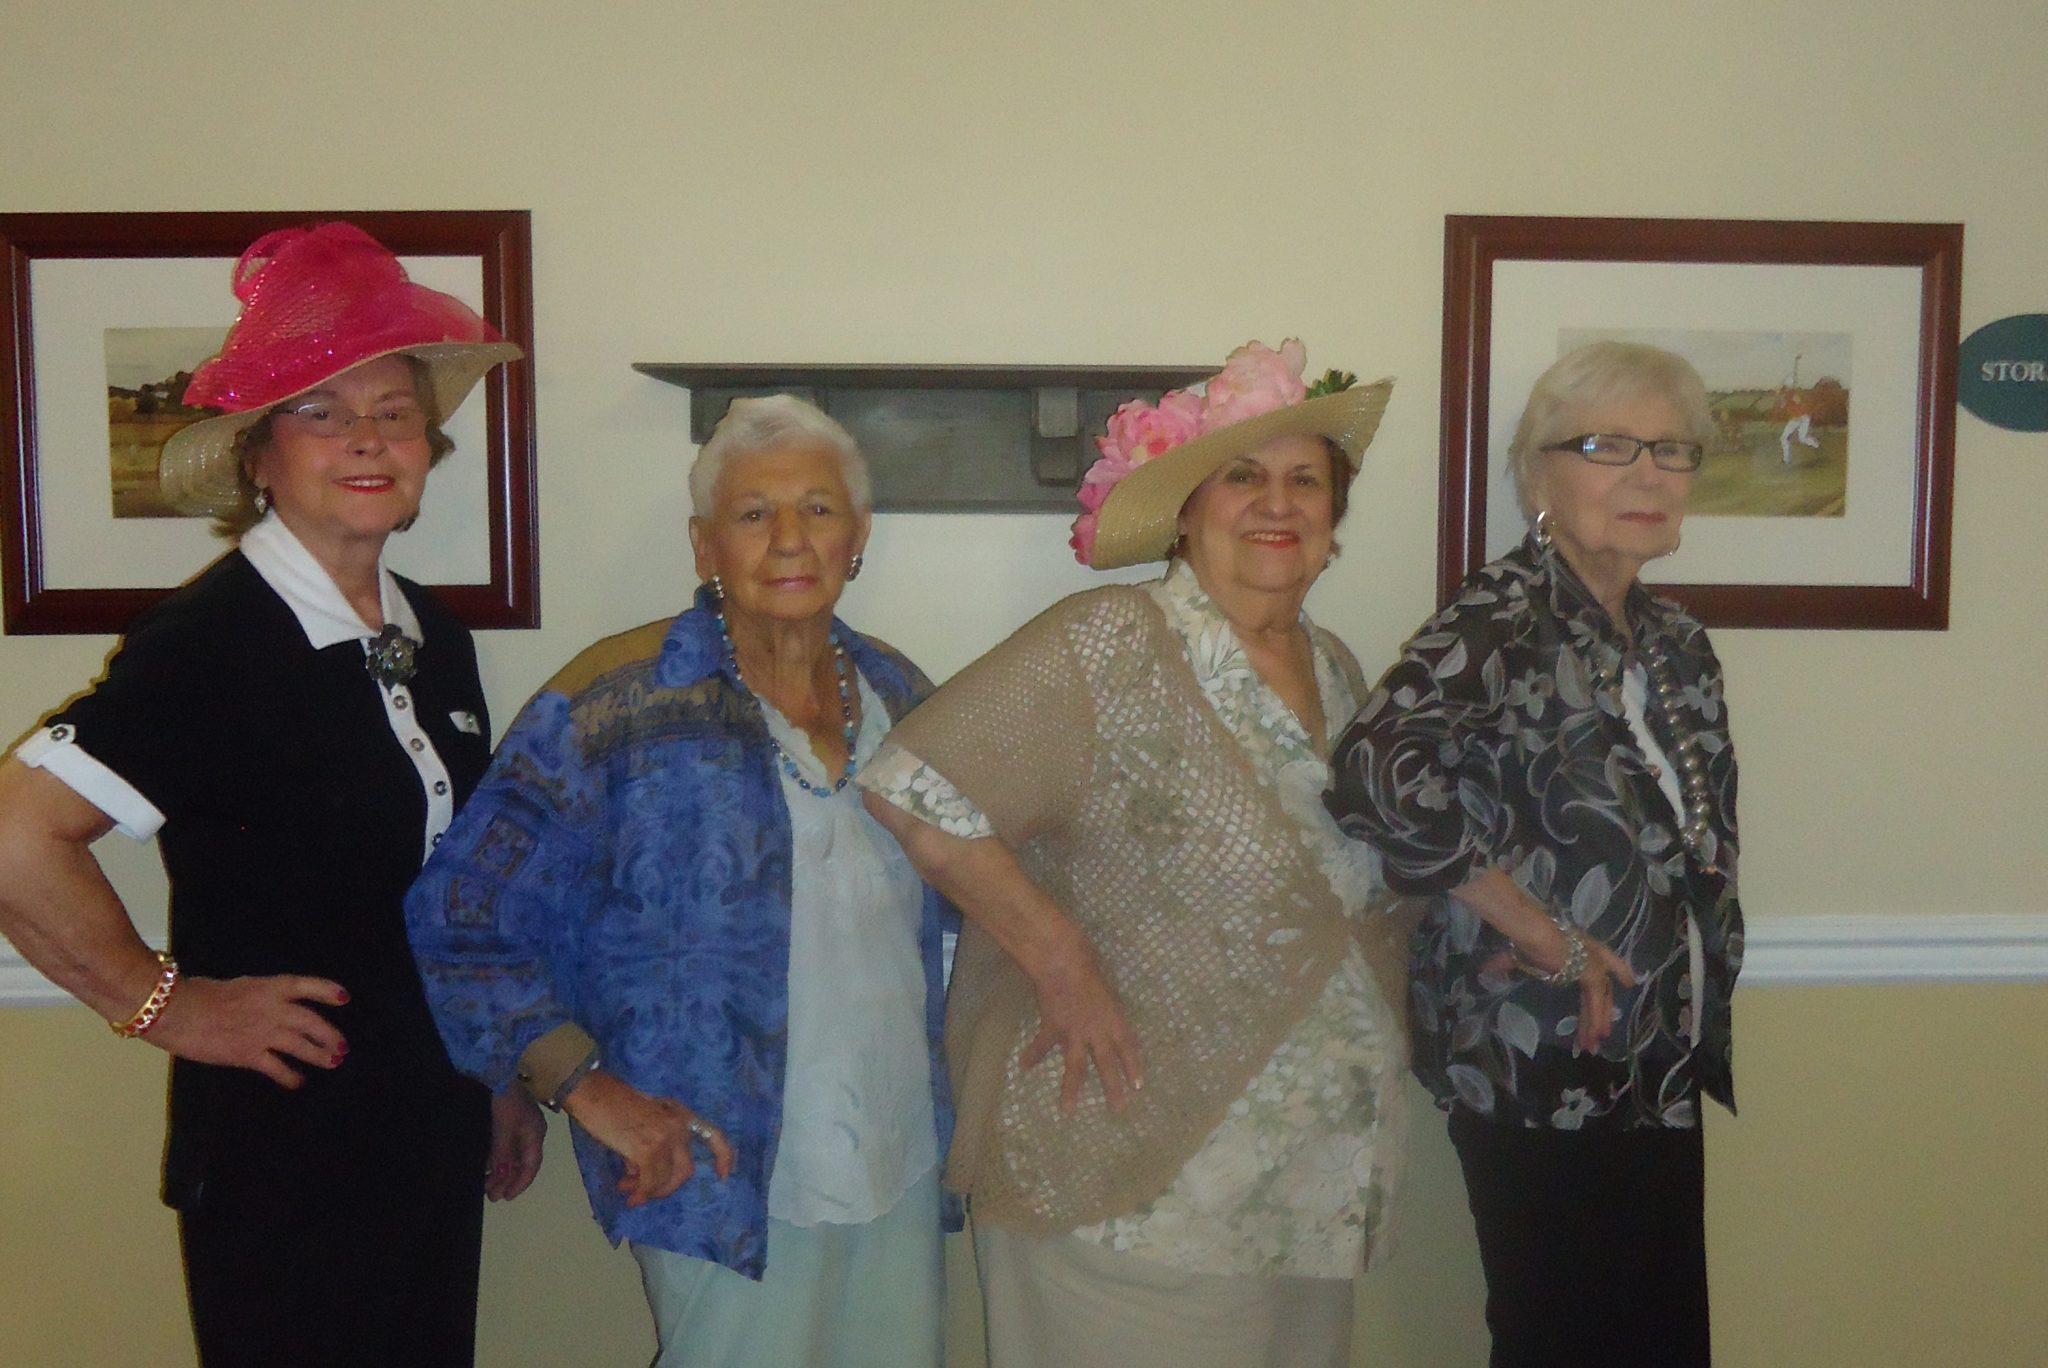 Get a Gander at These Gorgeous Grandmas